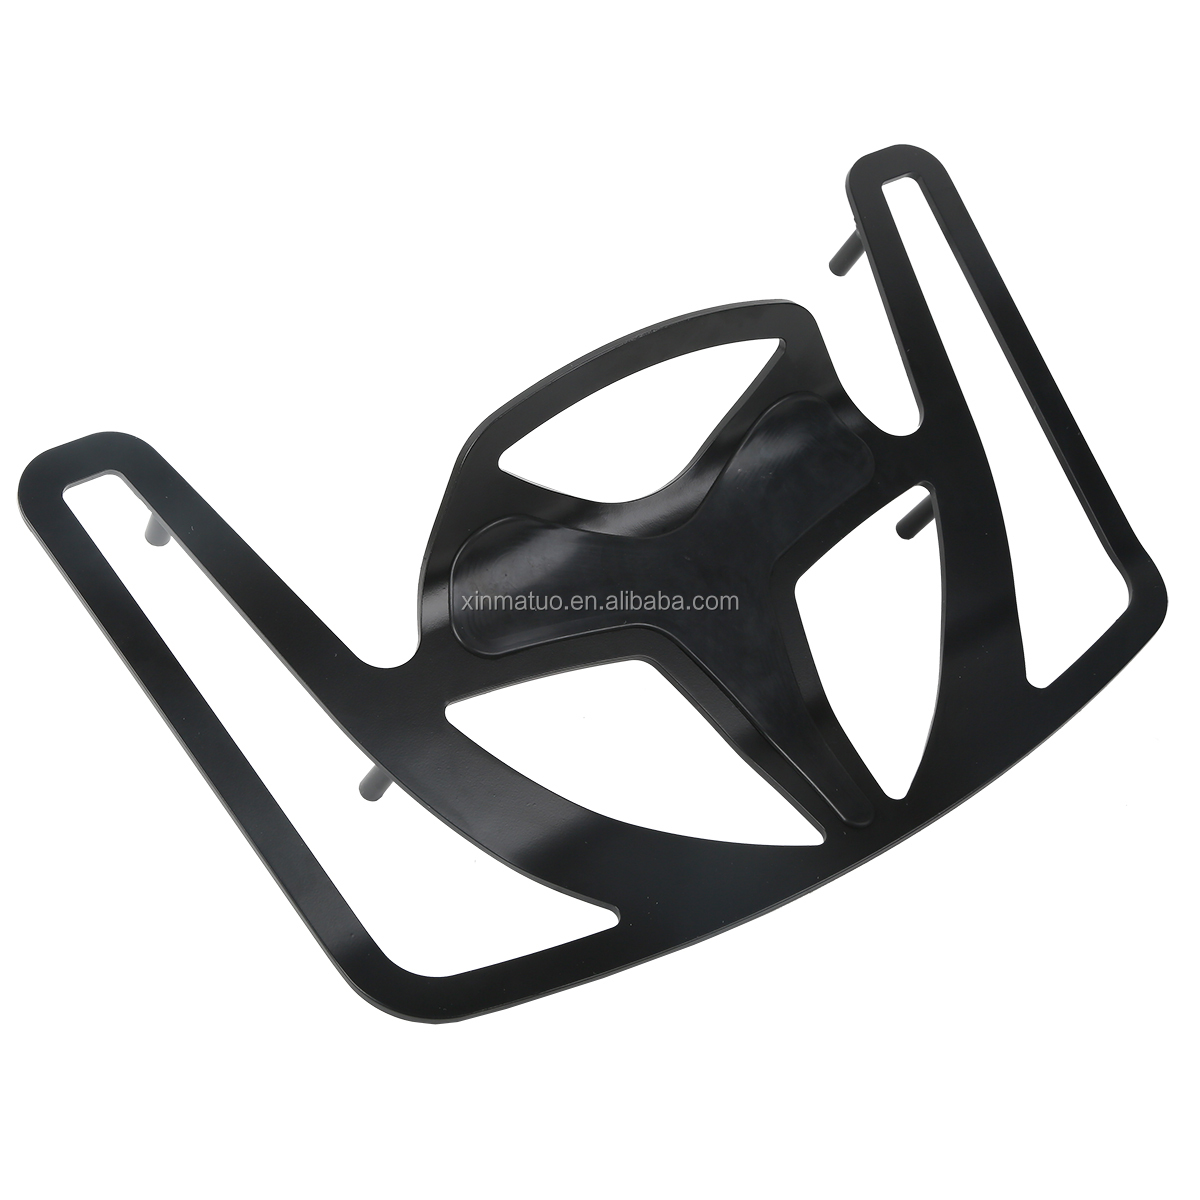 XF-GL1896-B Black CNC Aluminum Trunk luggage Rack For Honda Goldwing GL1800 2001-2017 02 <strong>03</strong>